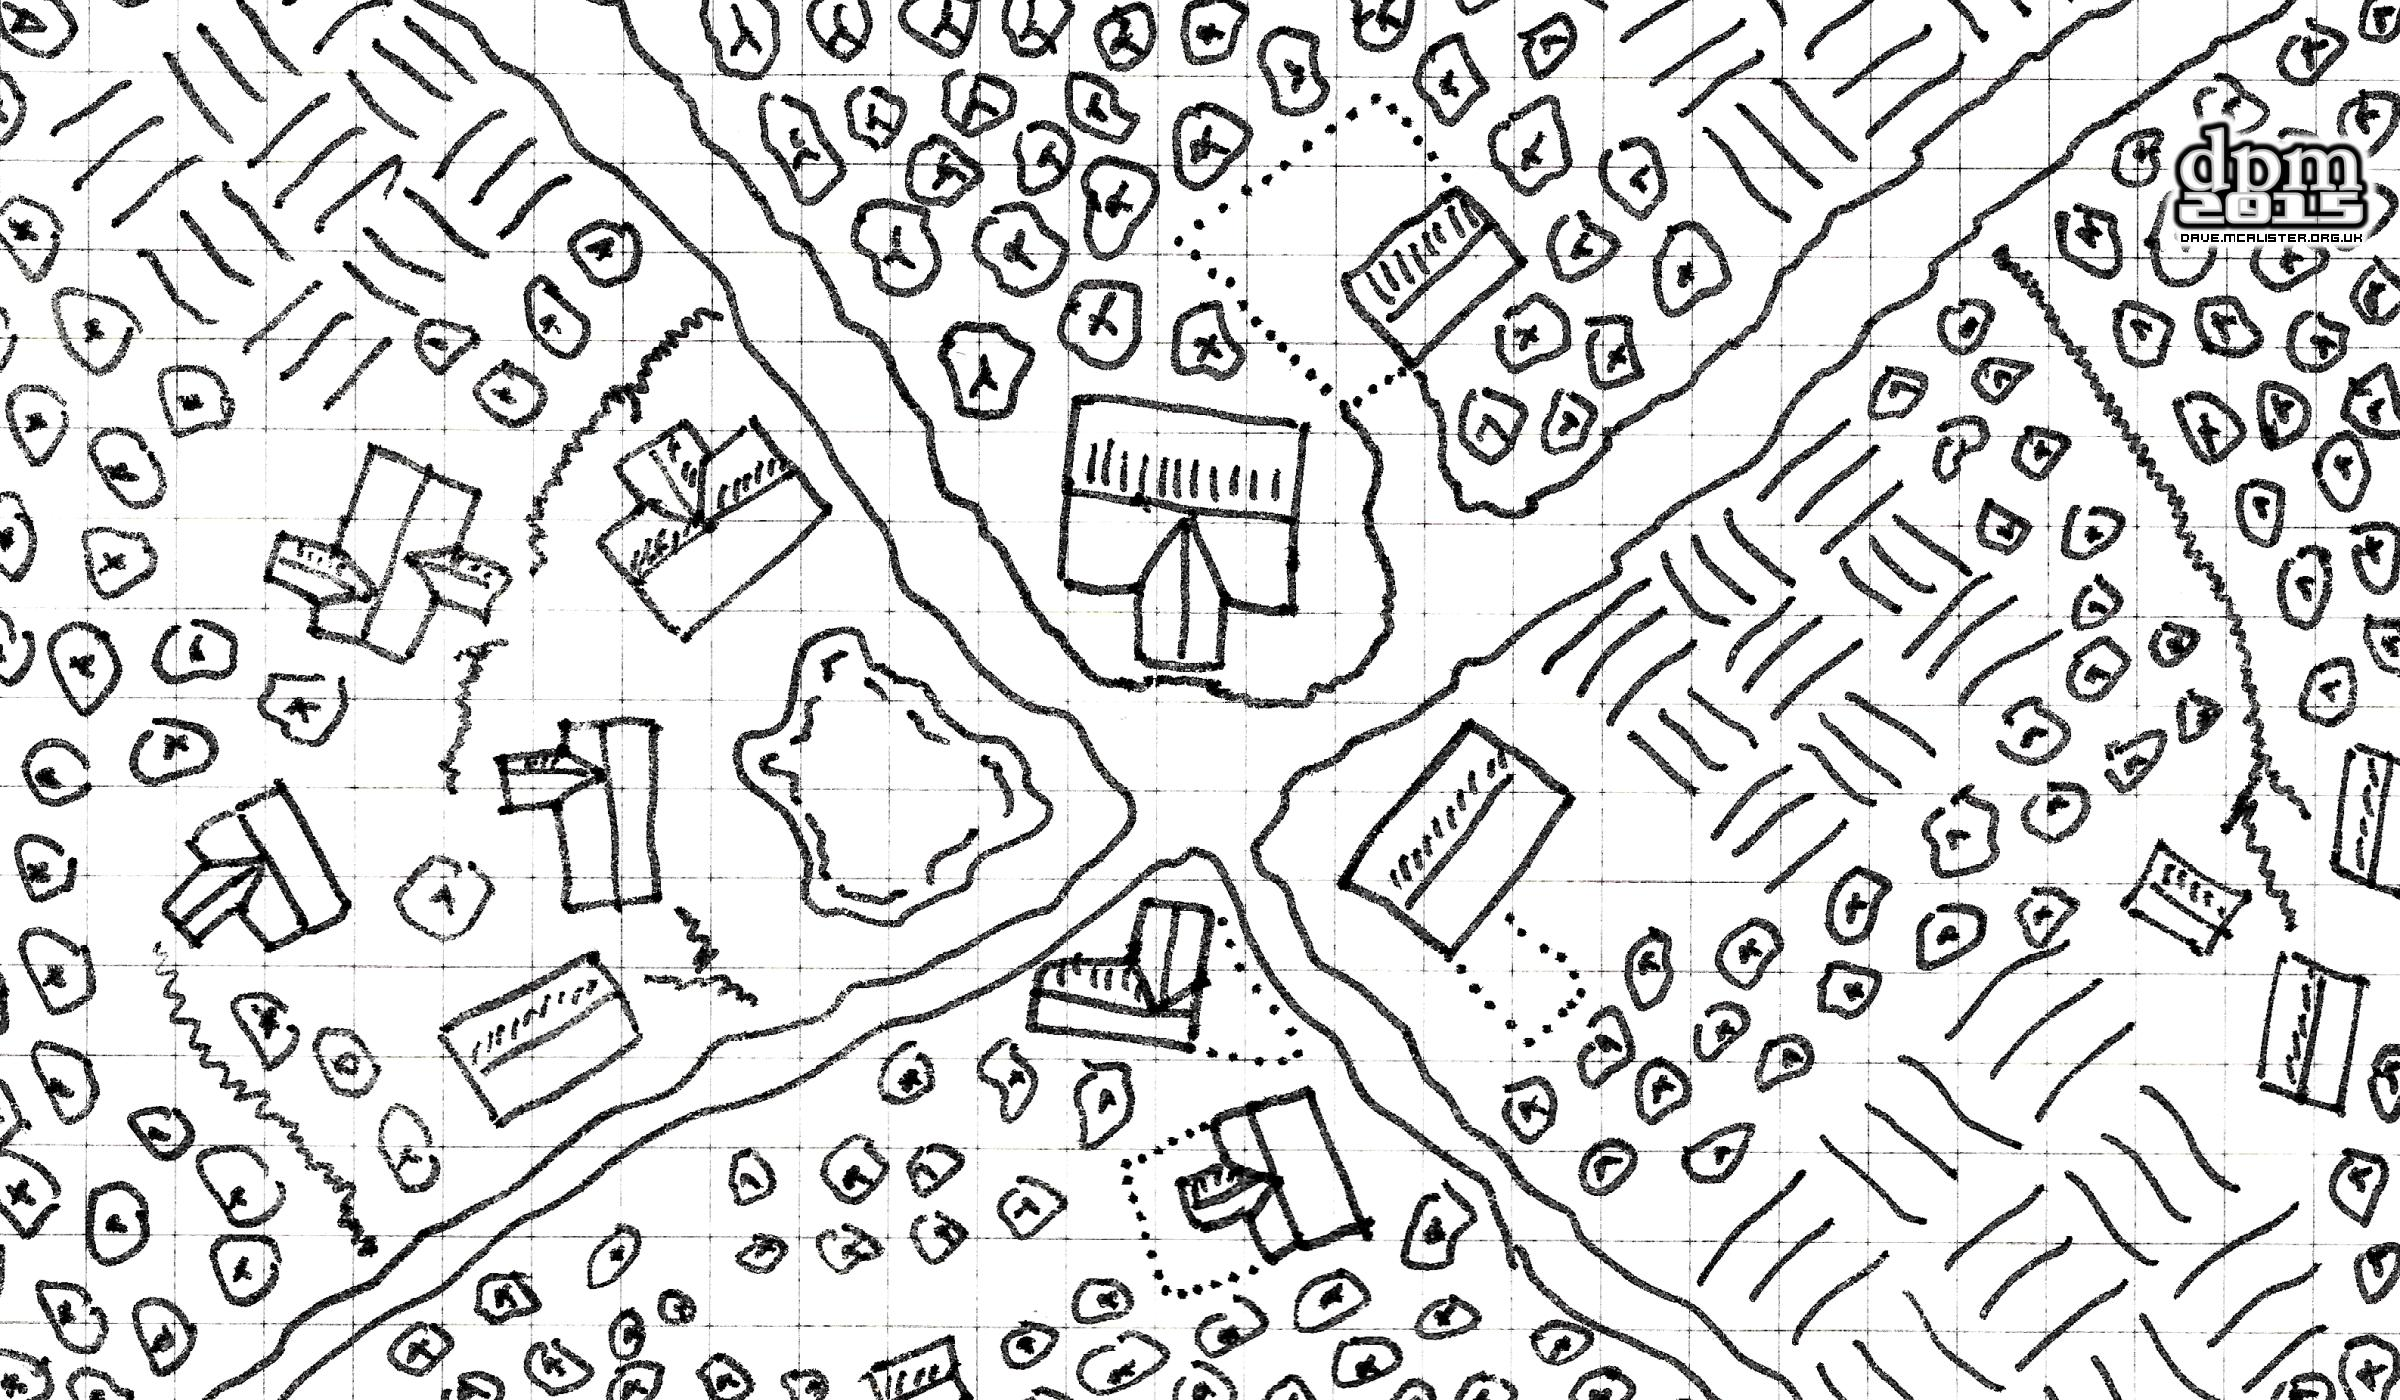 [Friday Map] Farming Village